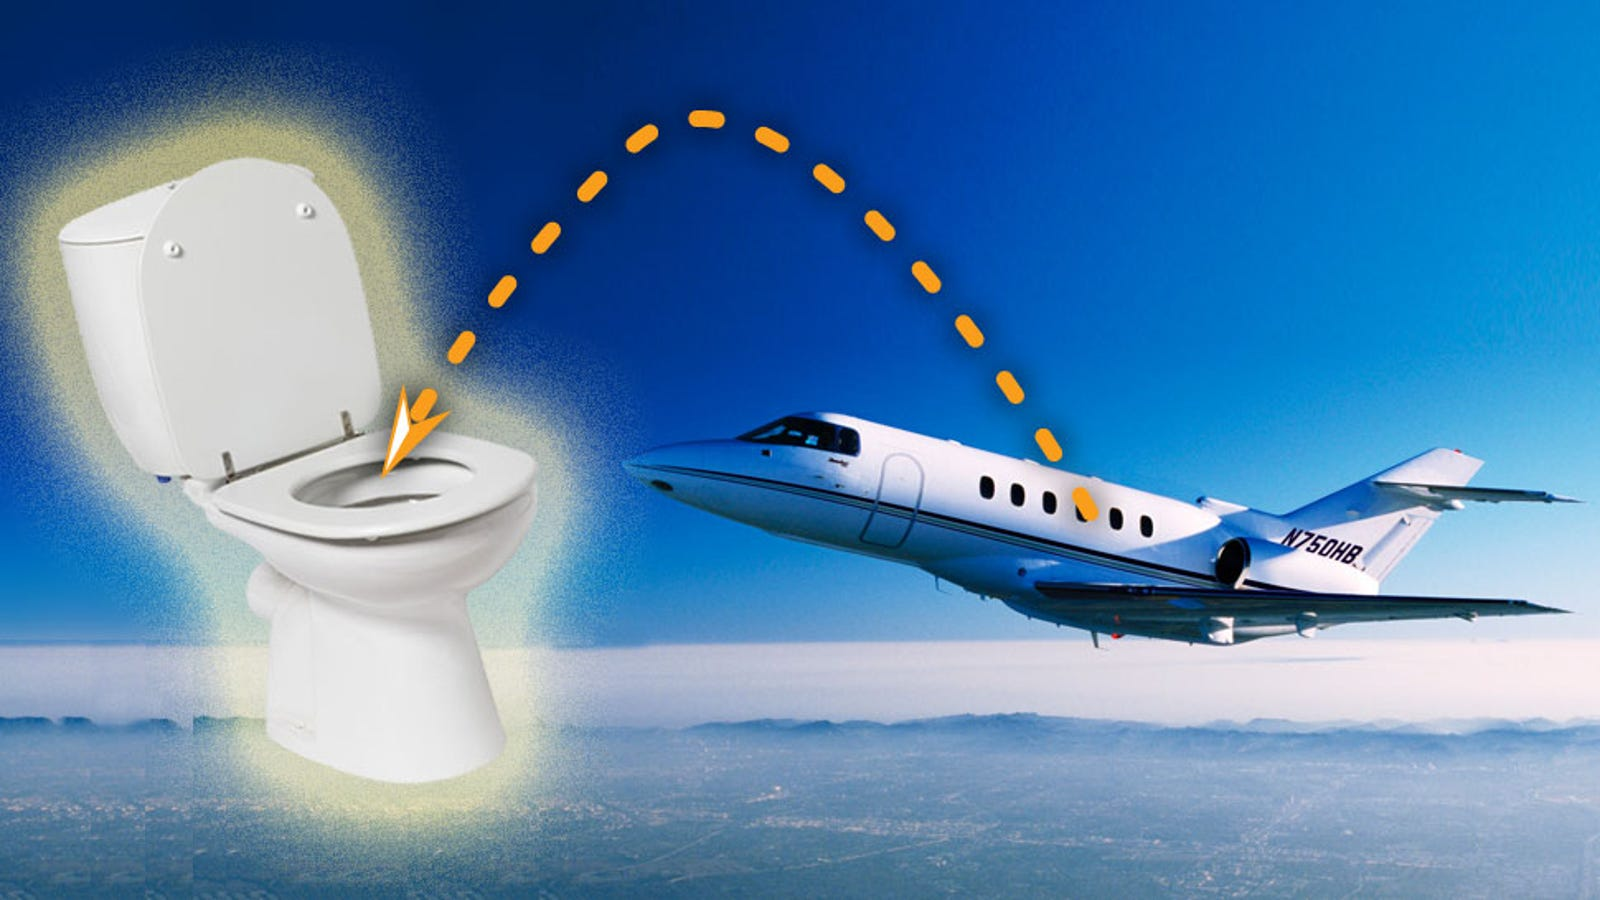 This Is The Most Embarrassing Plane-Pooping Story Ever